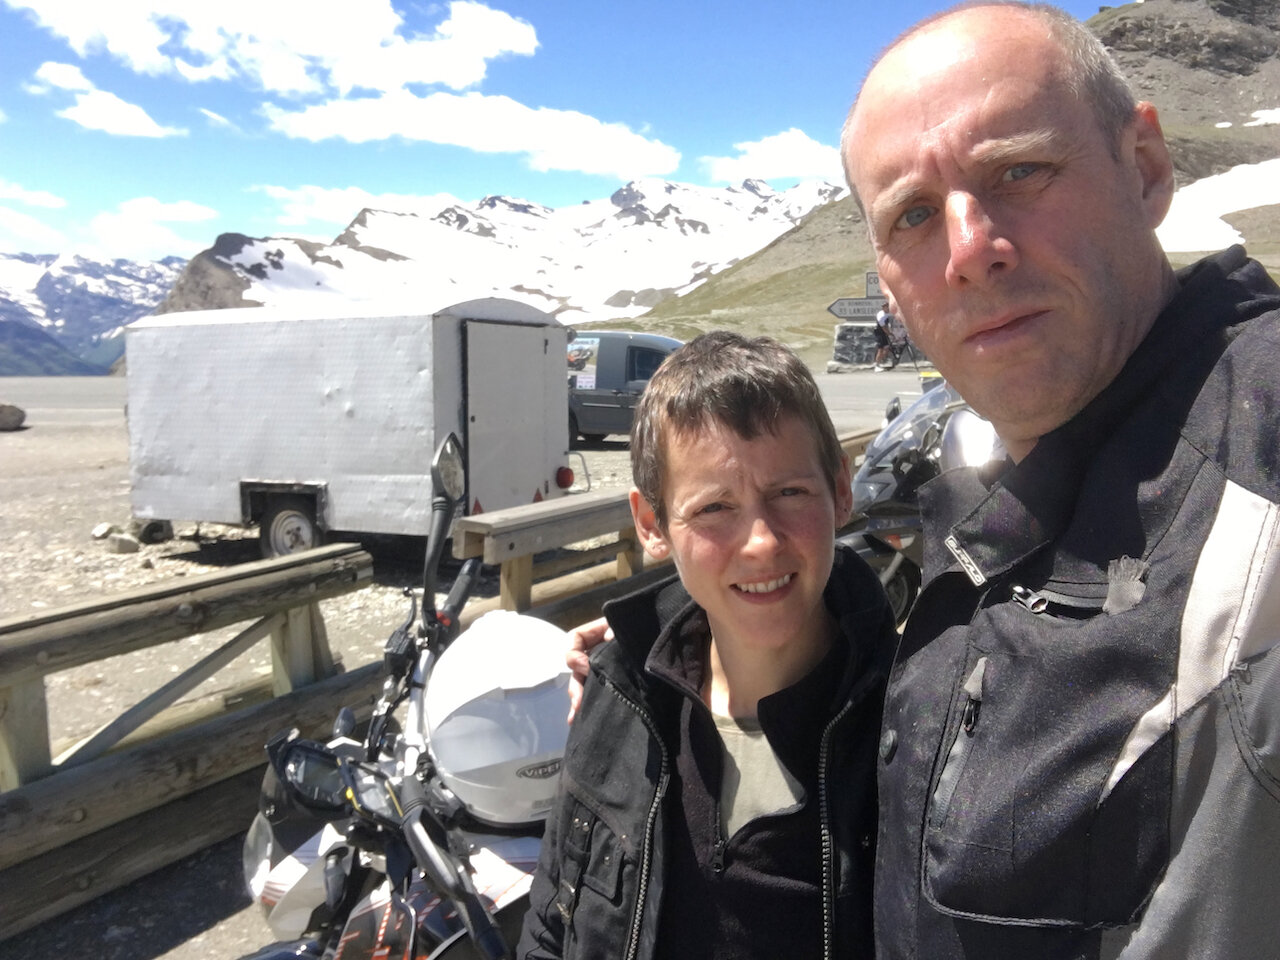 John and I taking a break from training and enjoying a motorbike ride in the Alps.